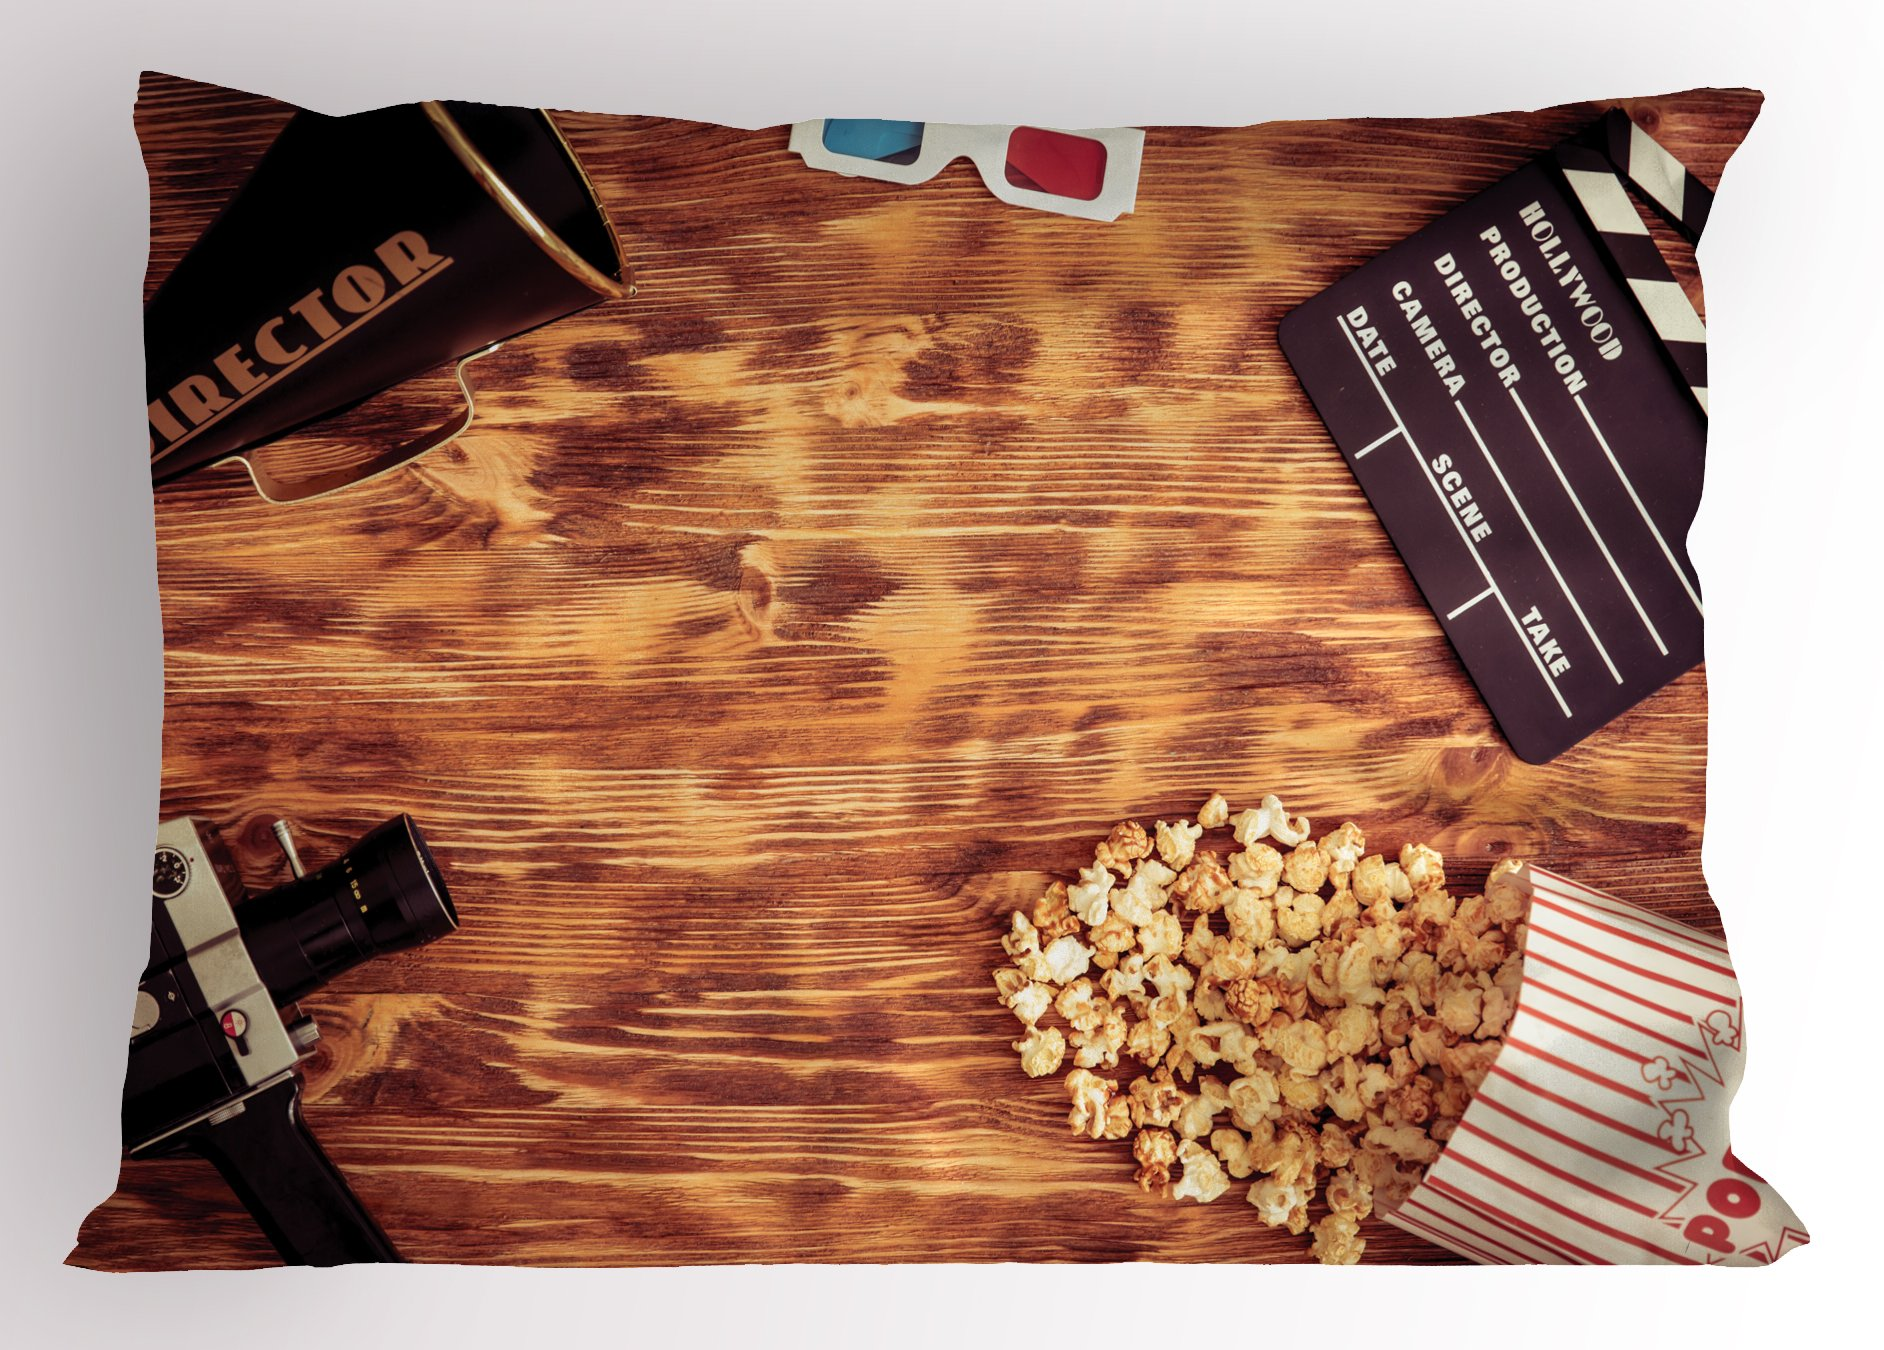 Ambesonne Movie Theater Pillow Sham, Retro Cinema Objects on a Wooden Table Top View Analog Vintage Technology, Decorative Standard Queen Size Printed Pillowcase, 30 X 20 inches, Multicolor